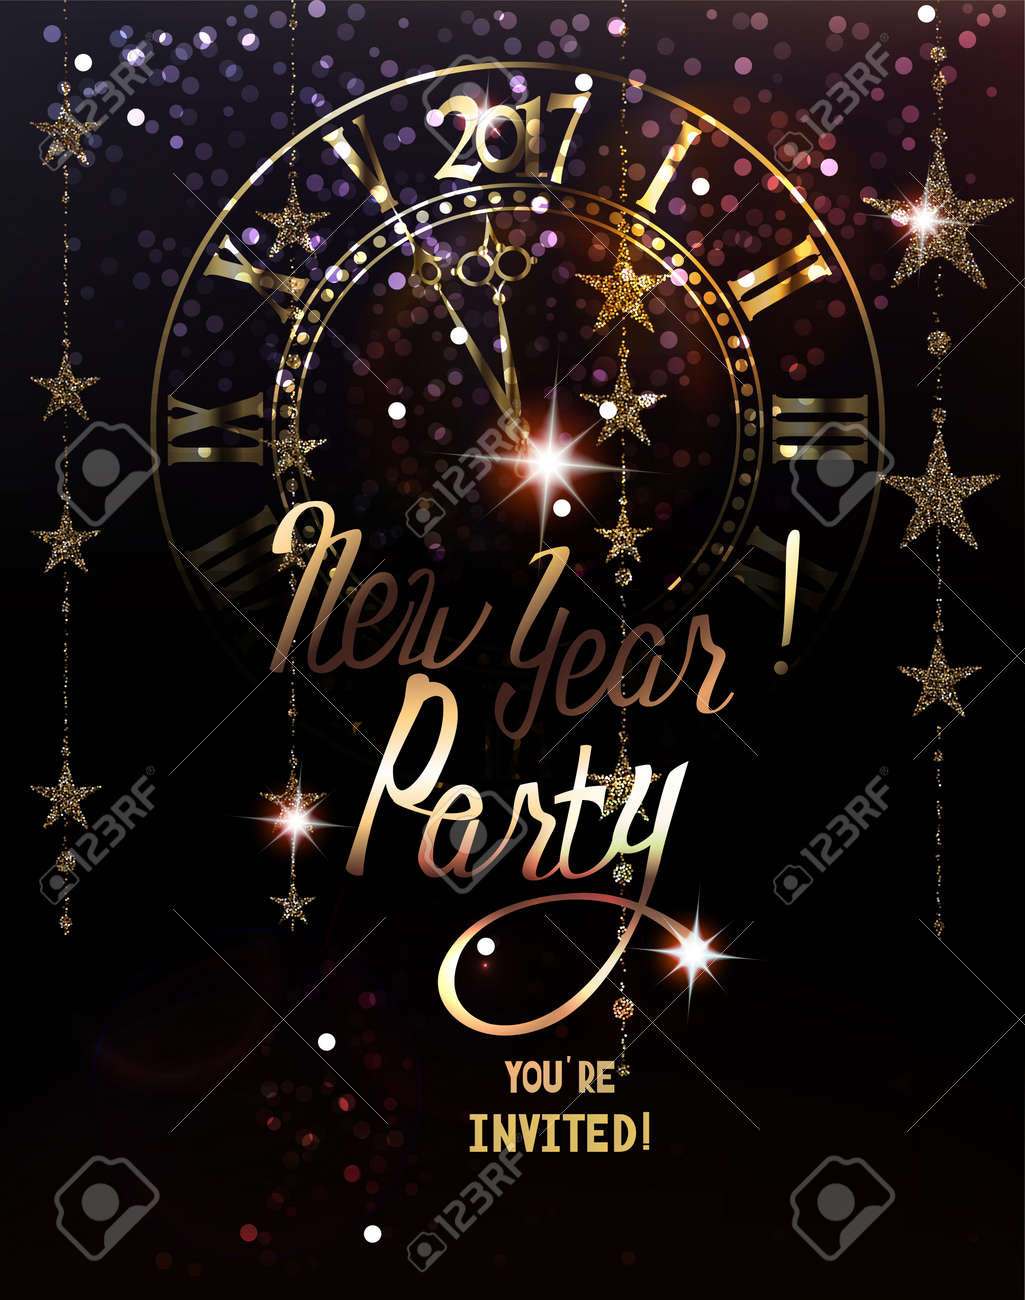 new year party invitation card with sparkling gold garlands and clock vector illustration stock vector